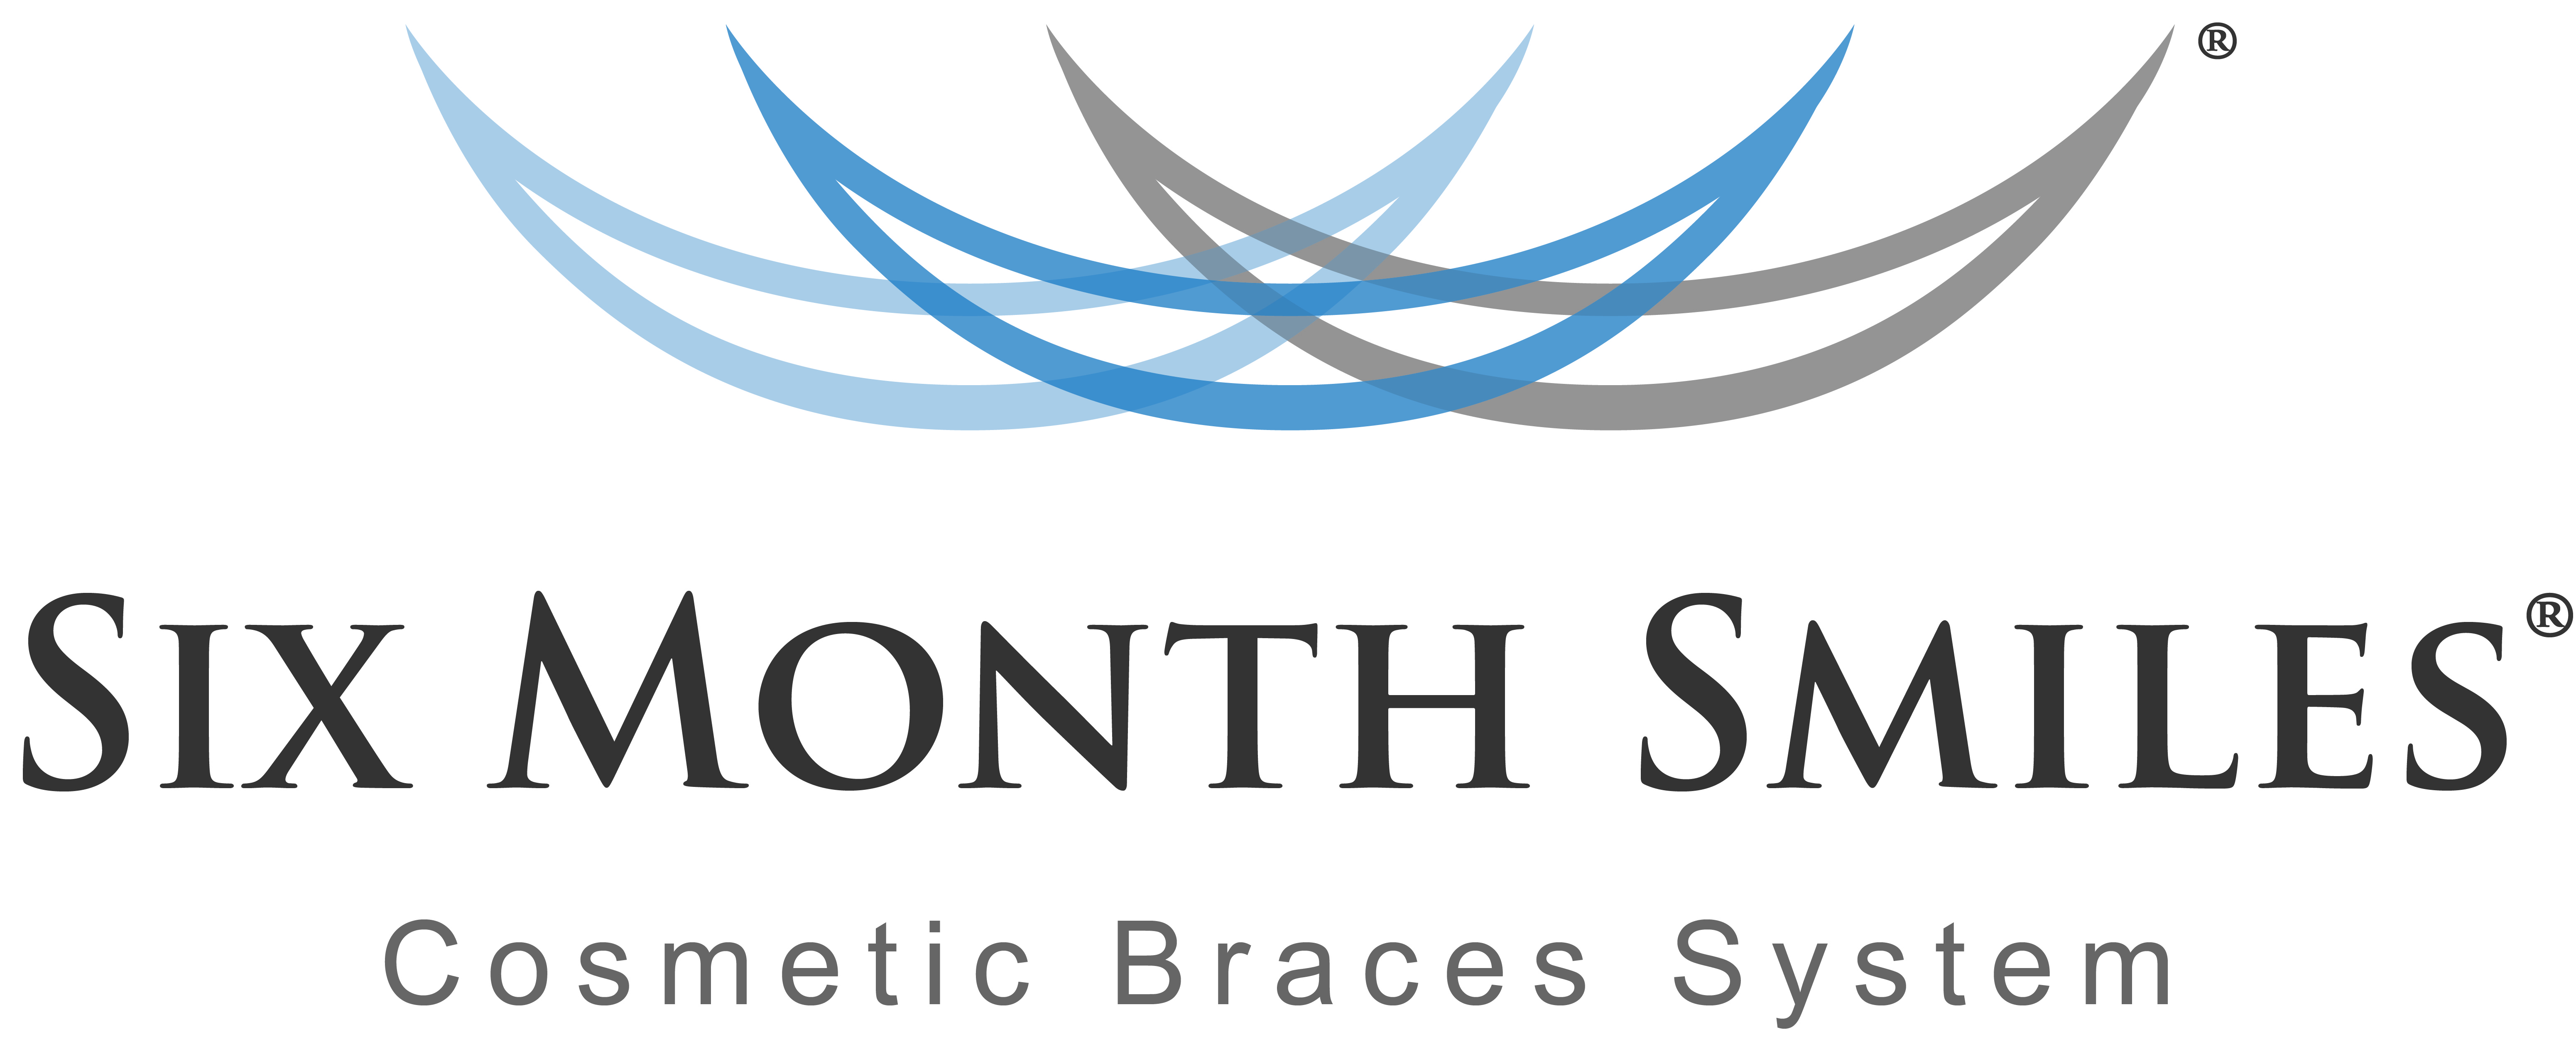 Six Month Smiles Cosmetic Braces System Logo